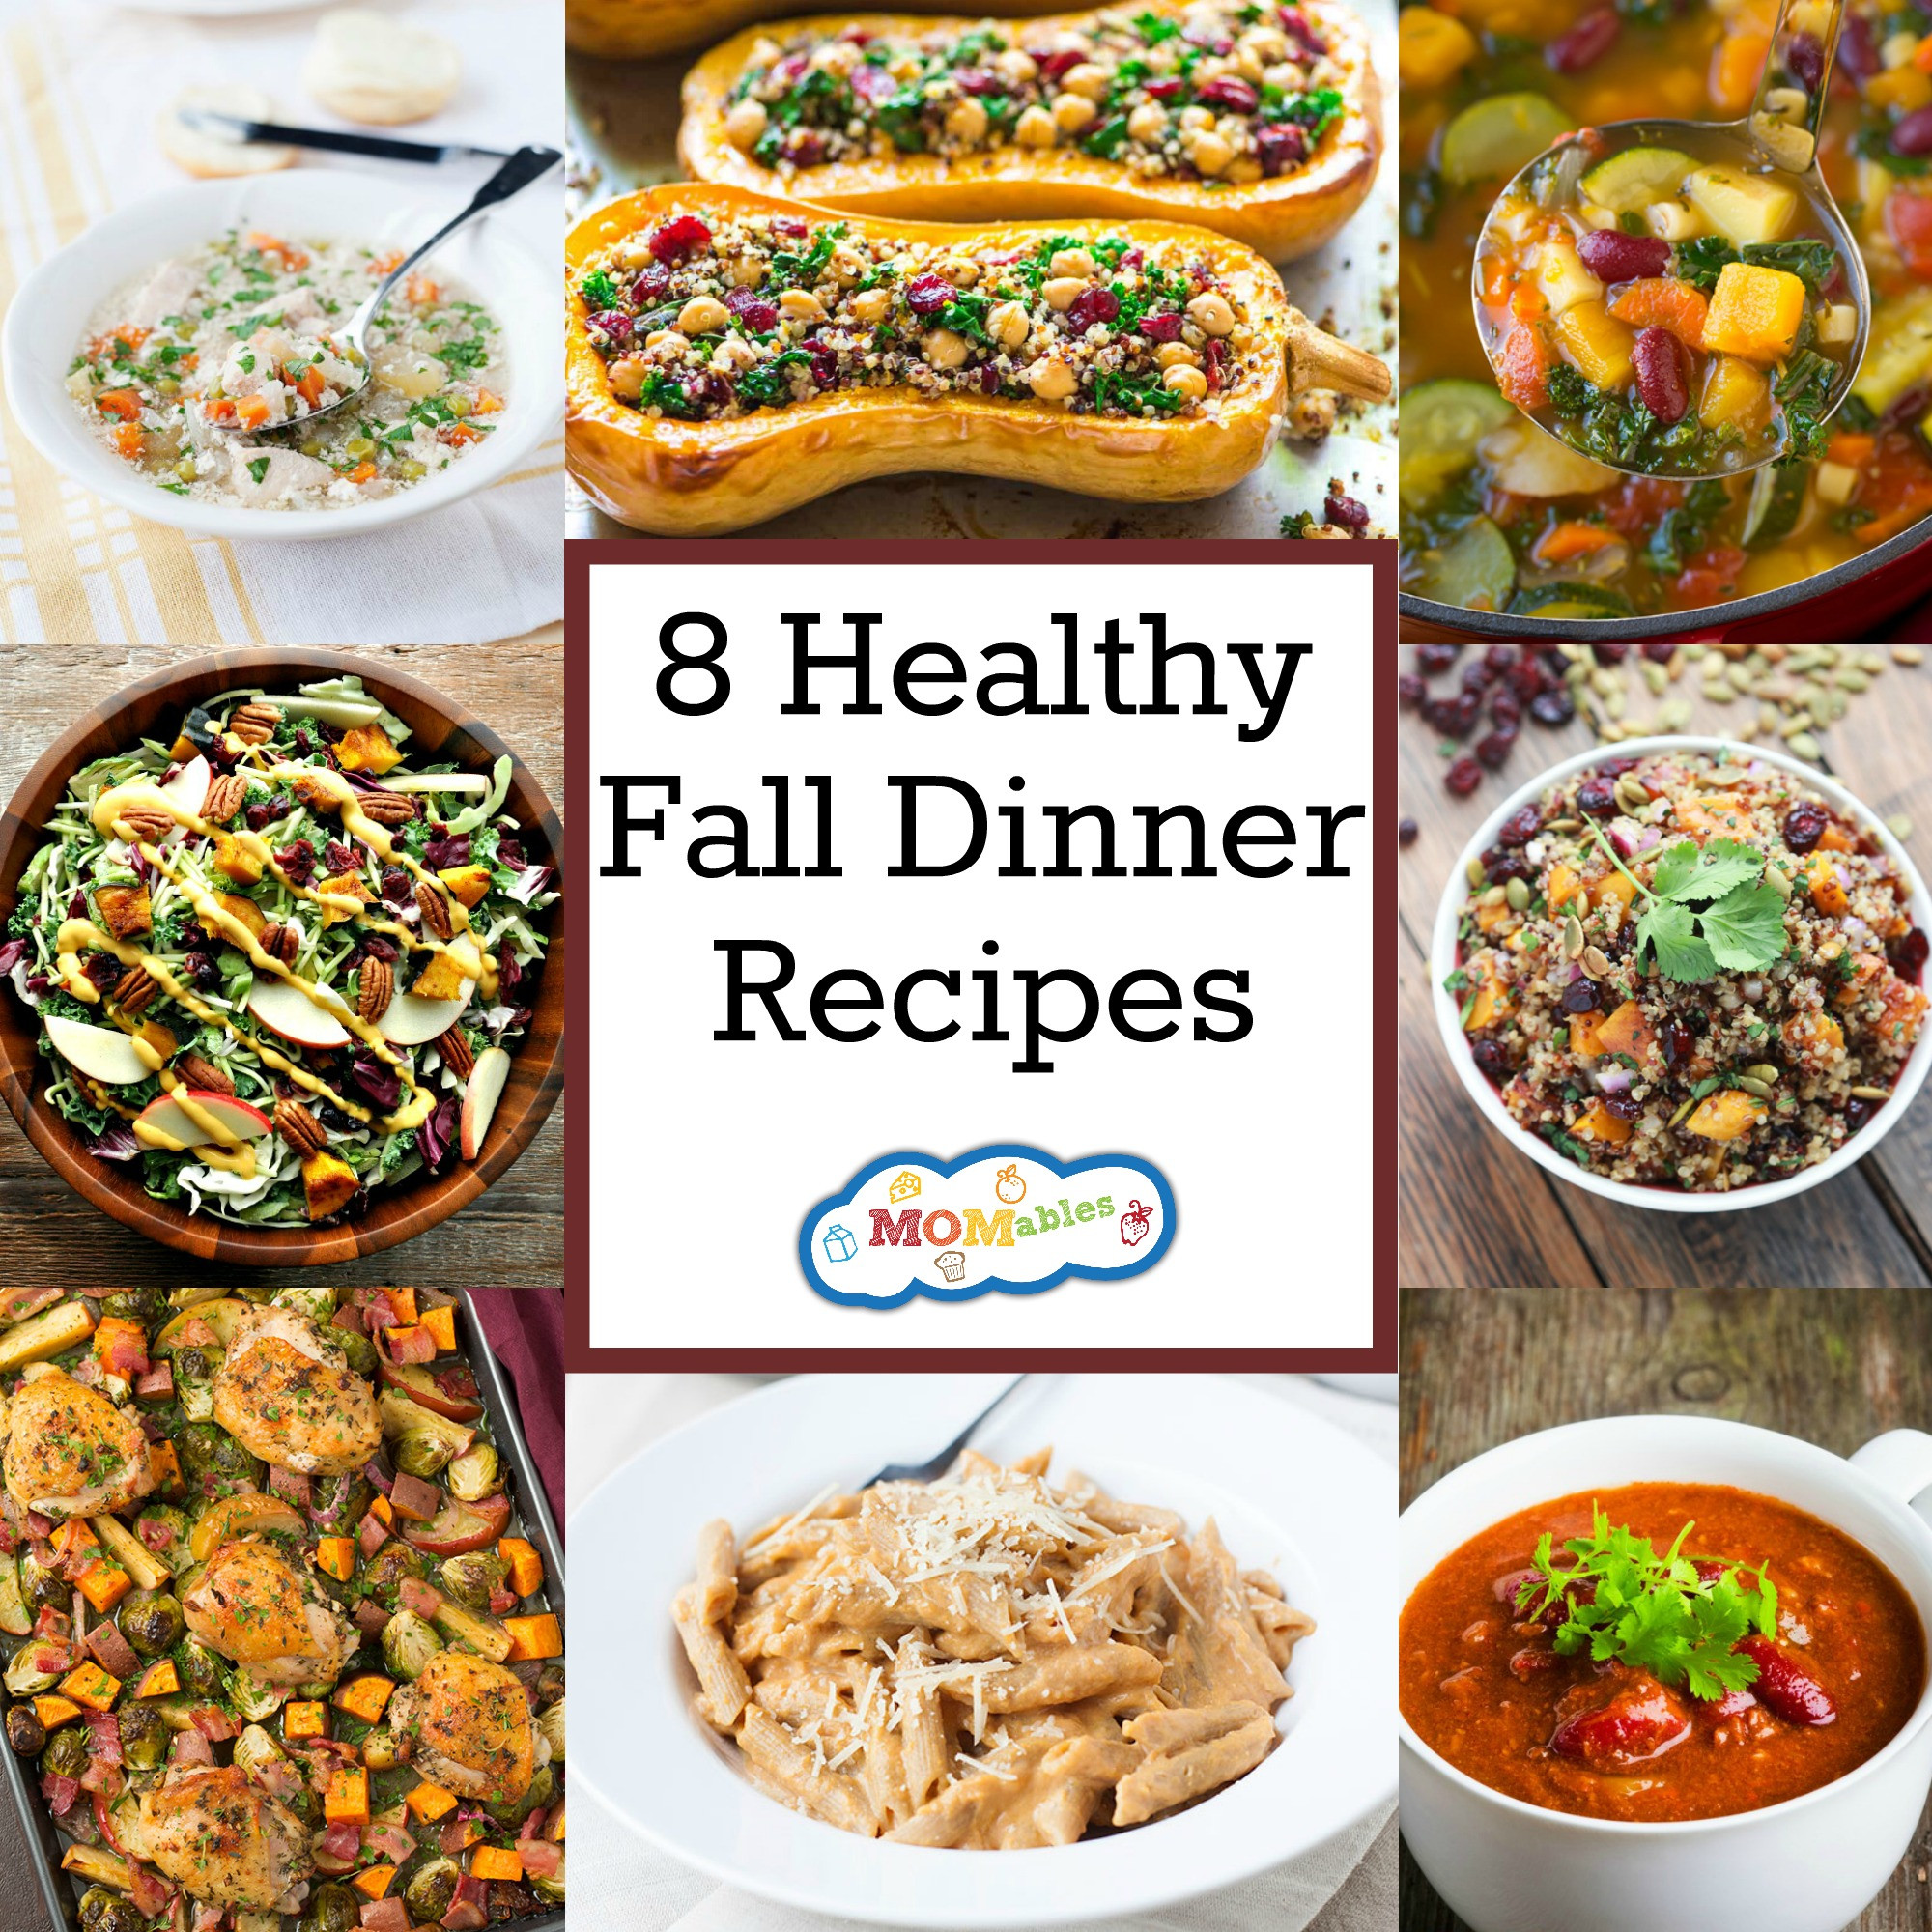 Fall Dinner Recipes  8 Healthy Fall Dinner Recipes MOMables Good Food